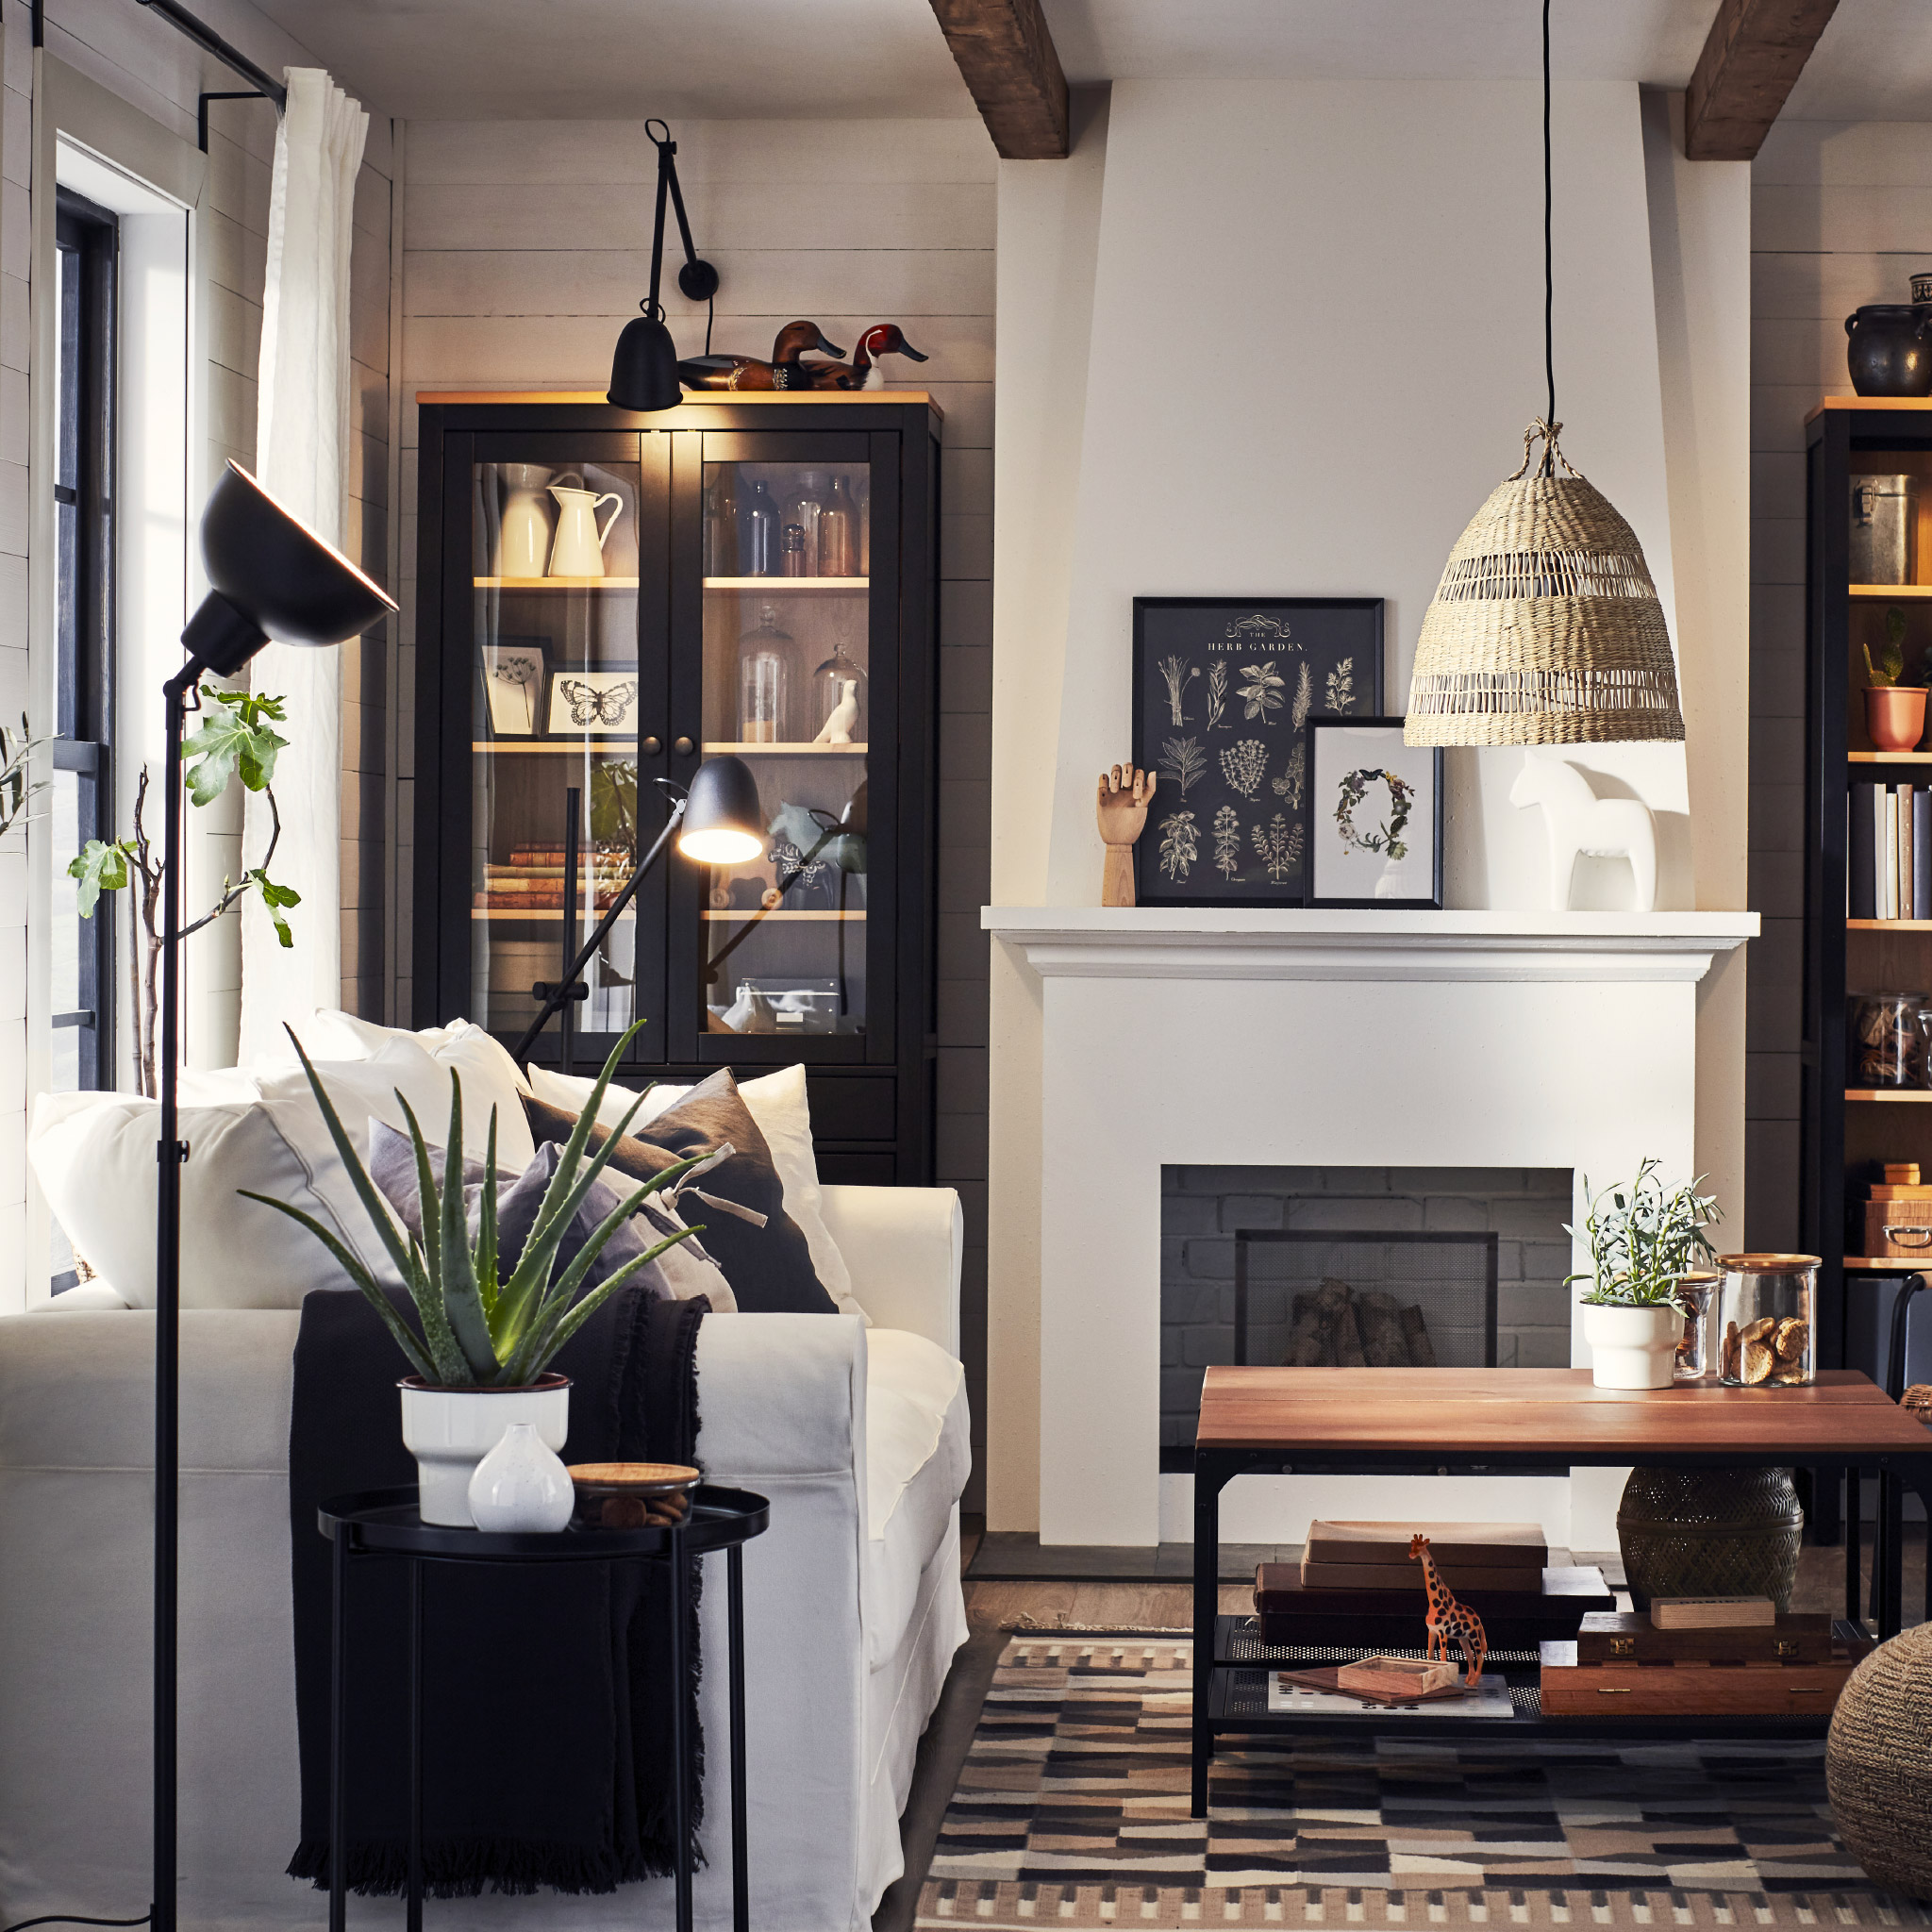 A living room with a white sofa, lamps and a side table in black, a beige-patterned rug and two coffee tables in black/wood.